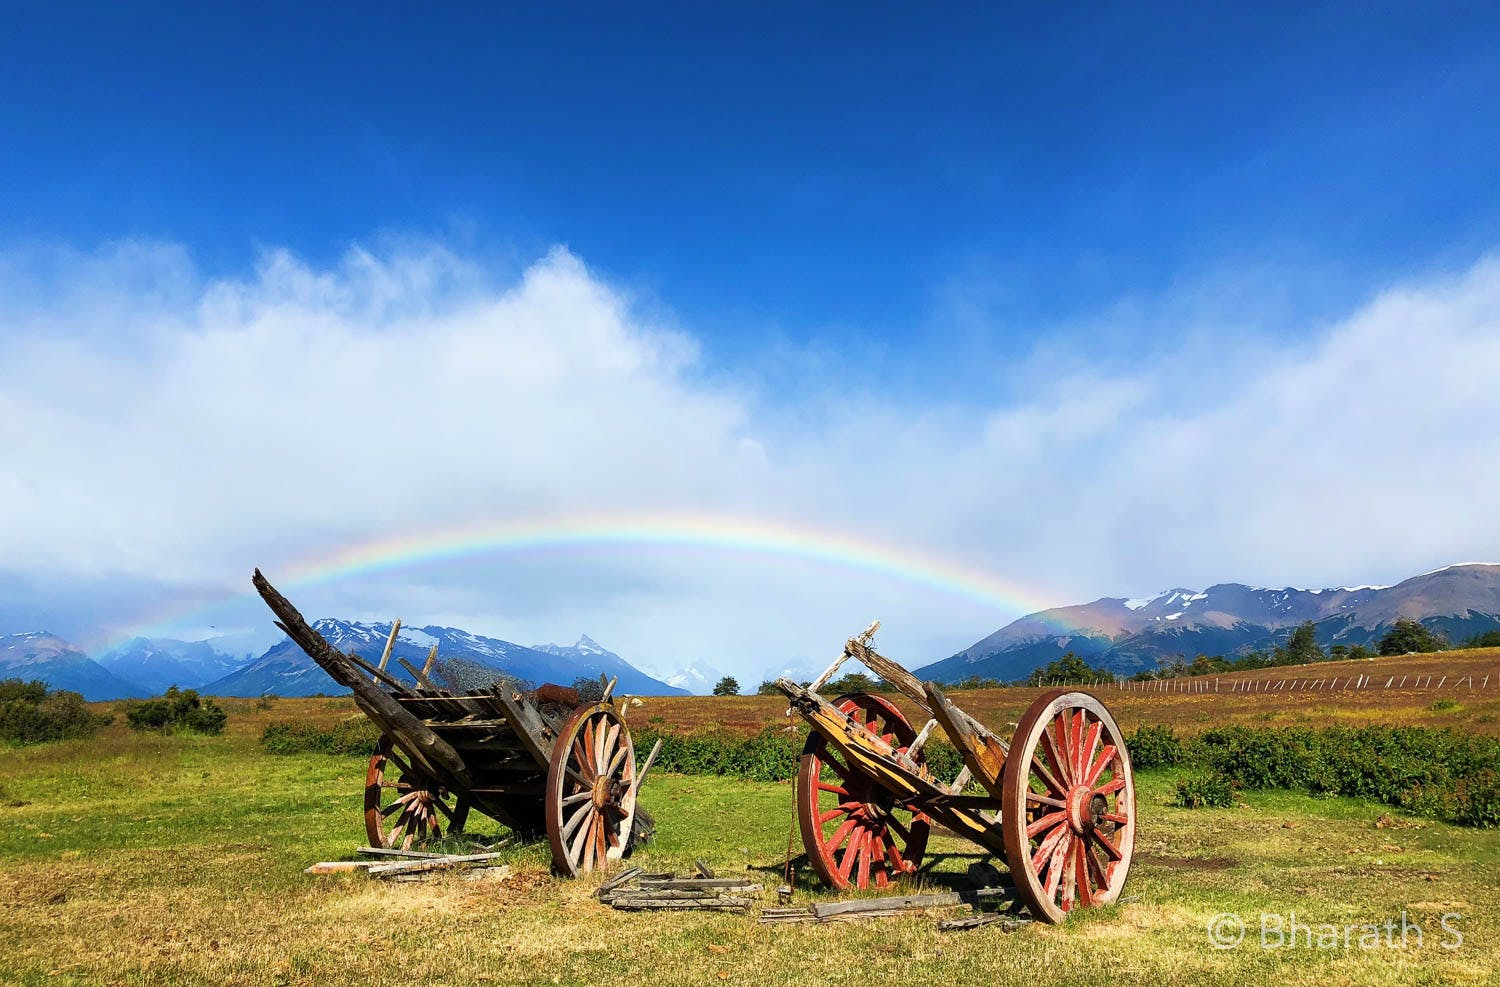 A rainbow over two carts in a field